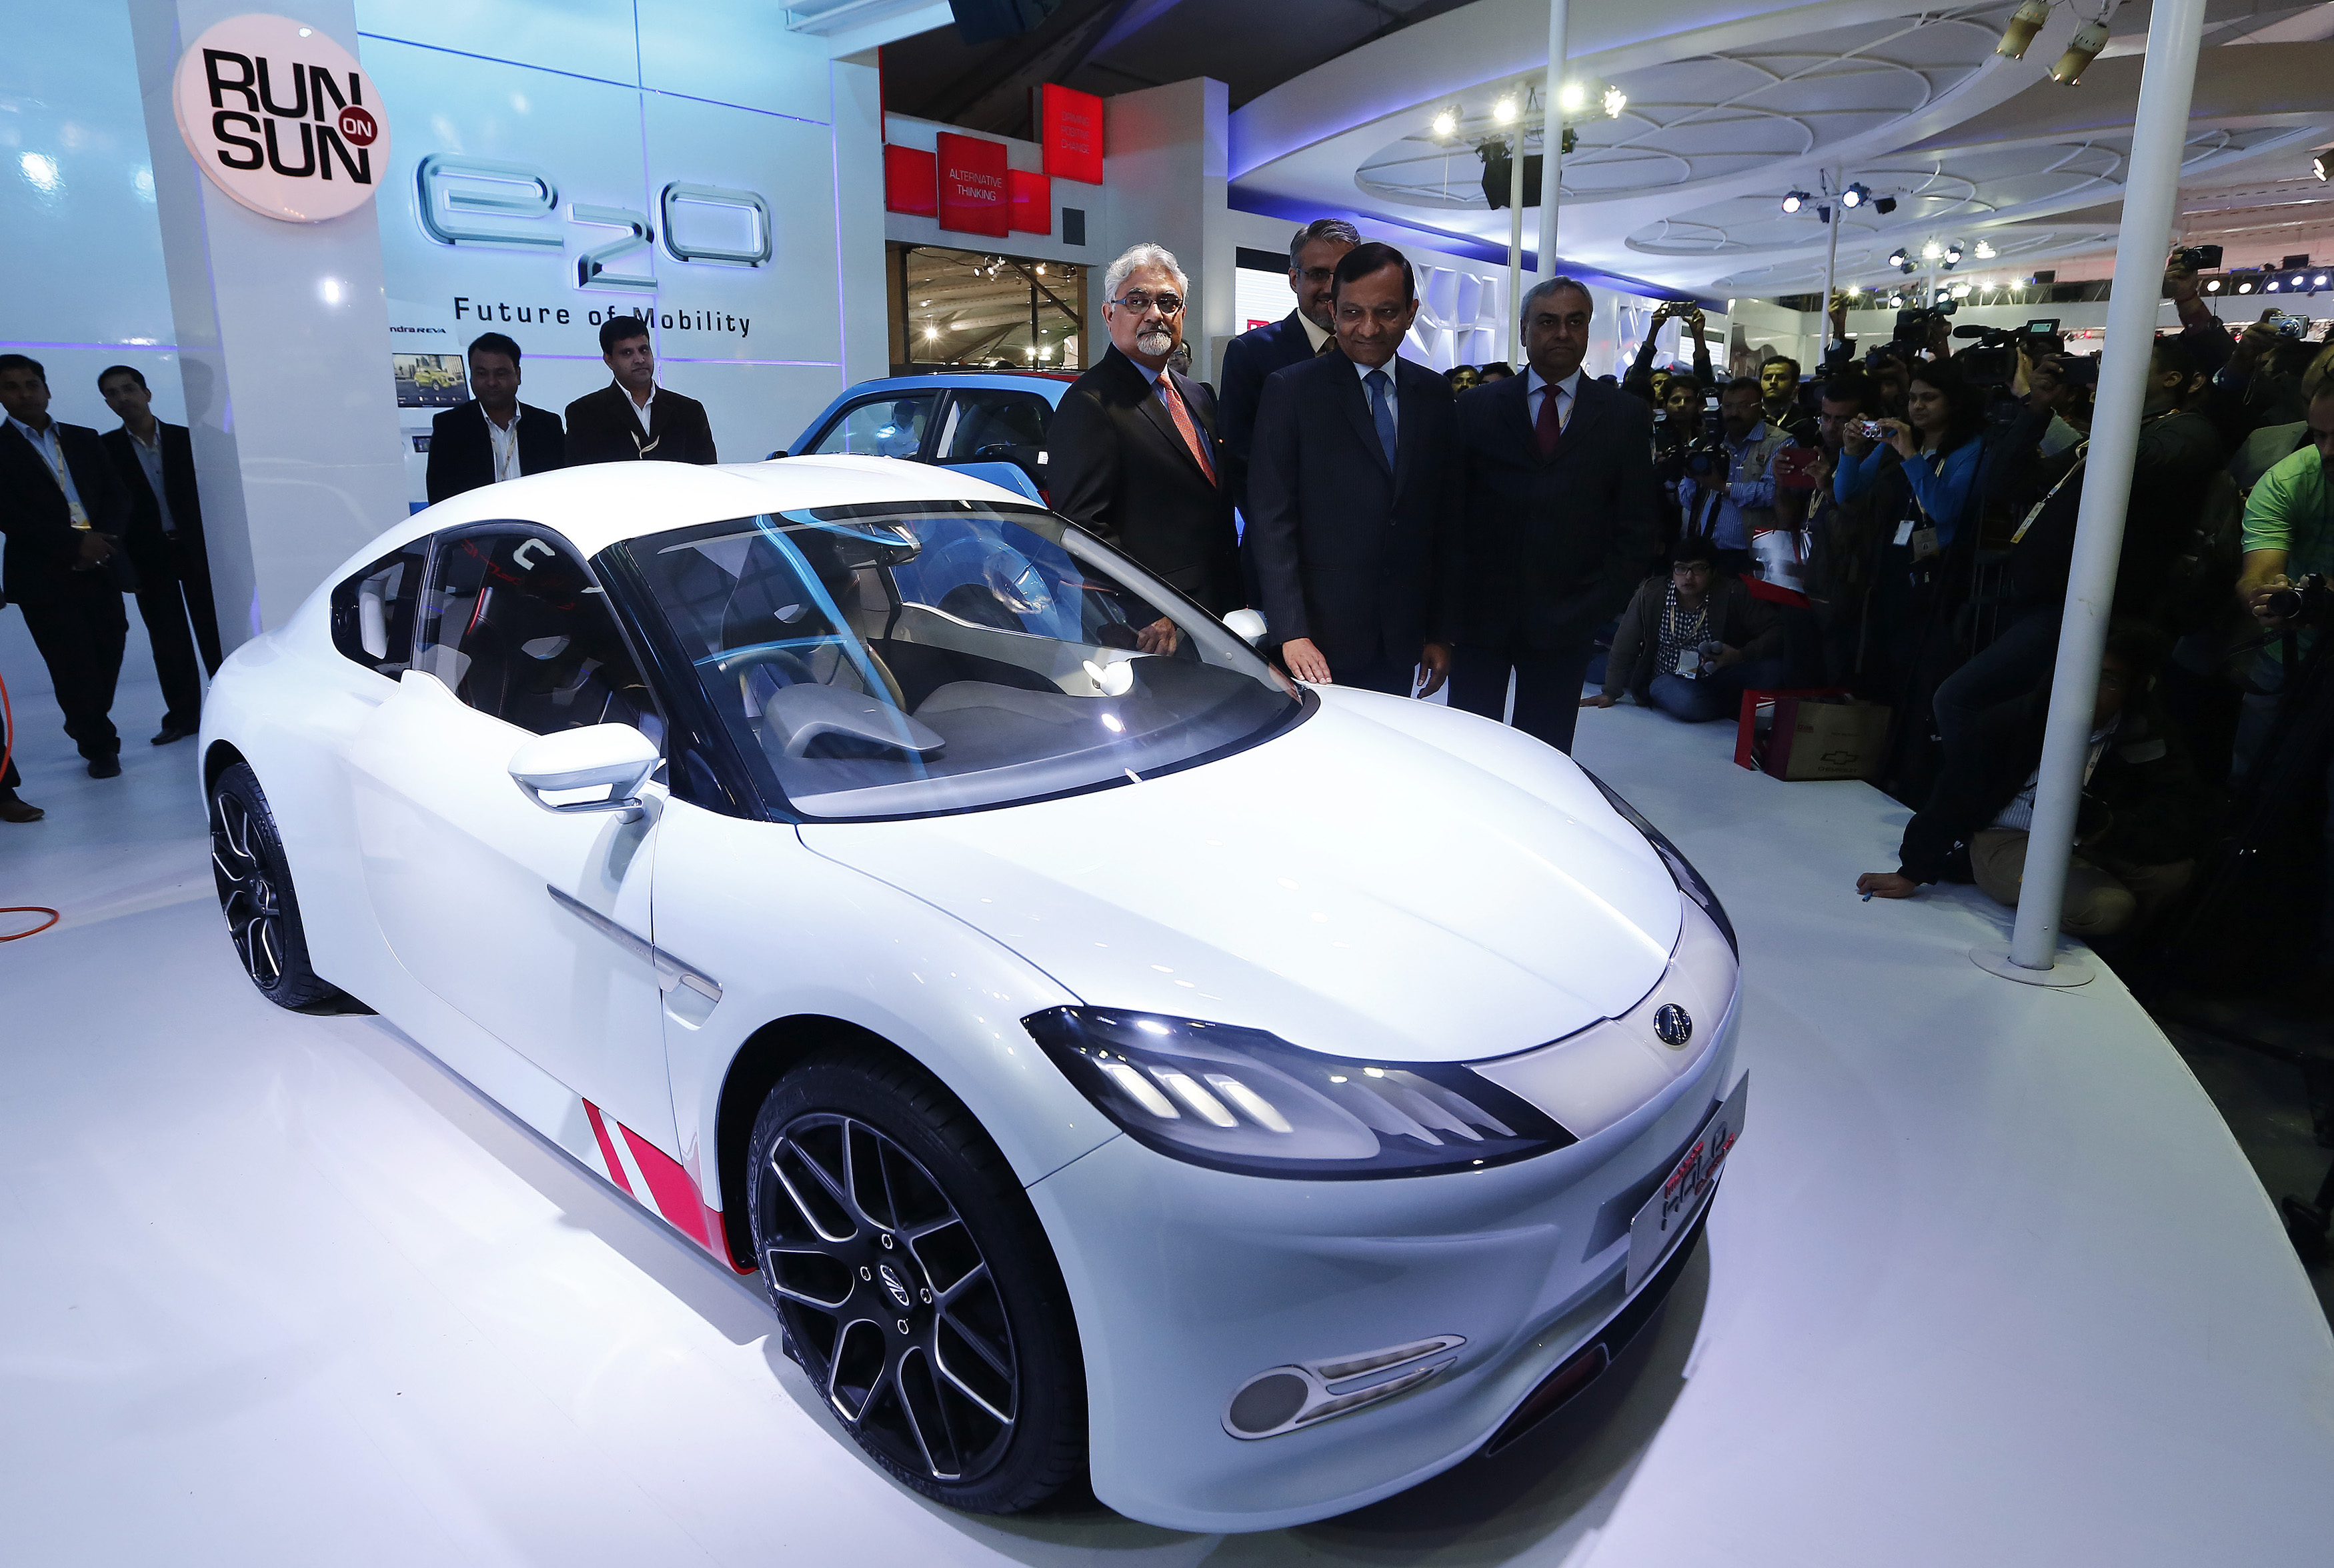 Ola says electric vehicles need a whole new Indian power sector